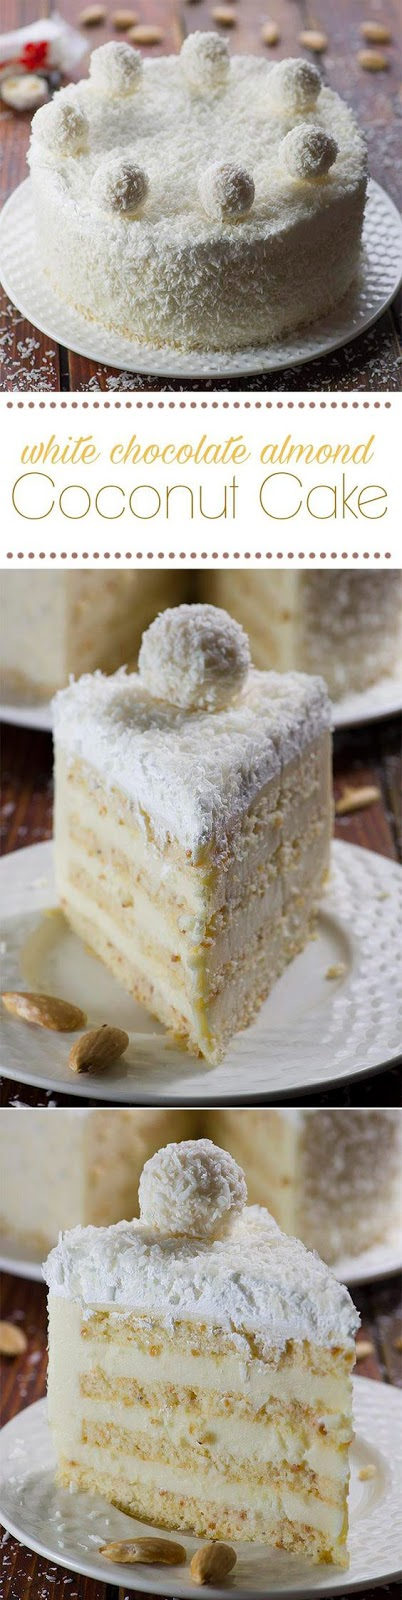 White Chocolate Almond Coconut Cake